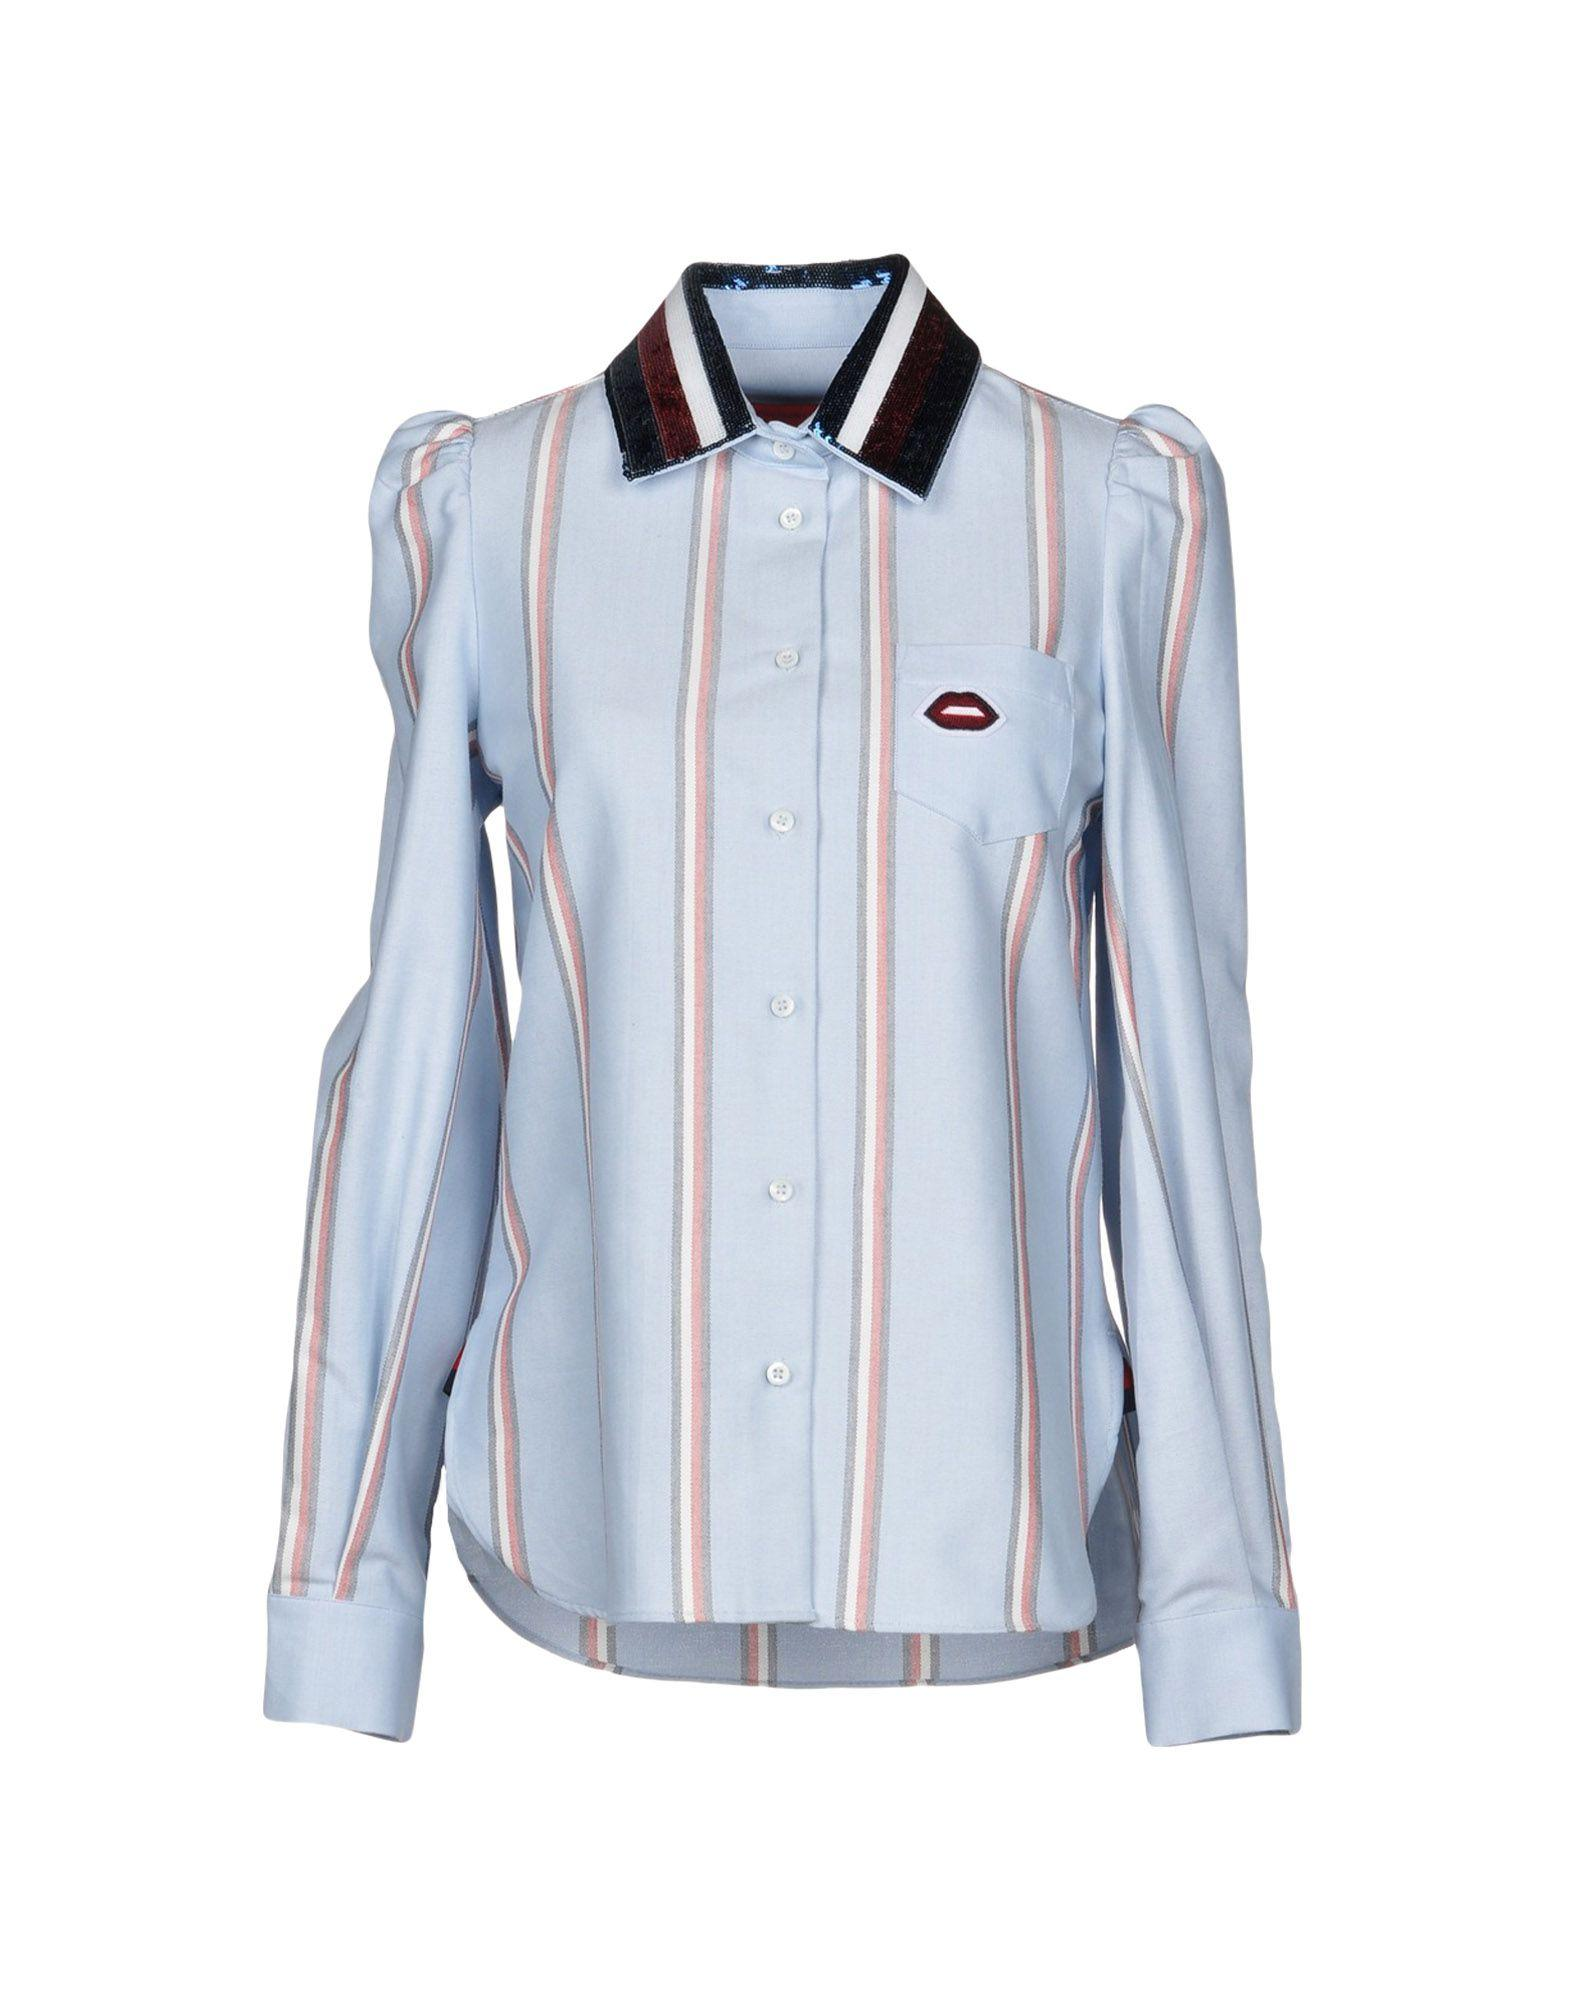 Tommy Hilfiger Shirts In Sky Blue